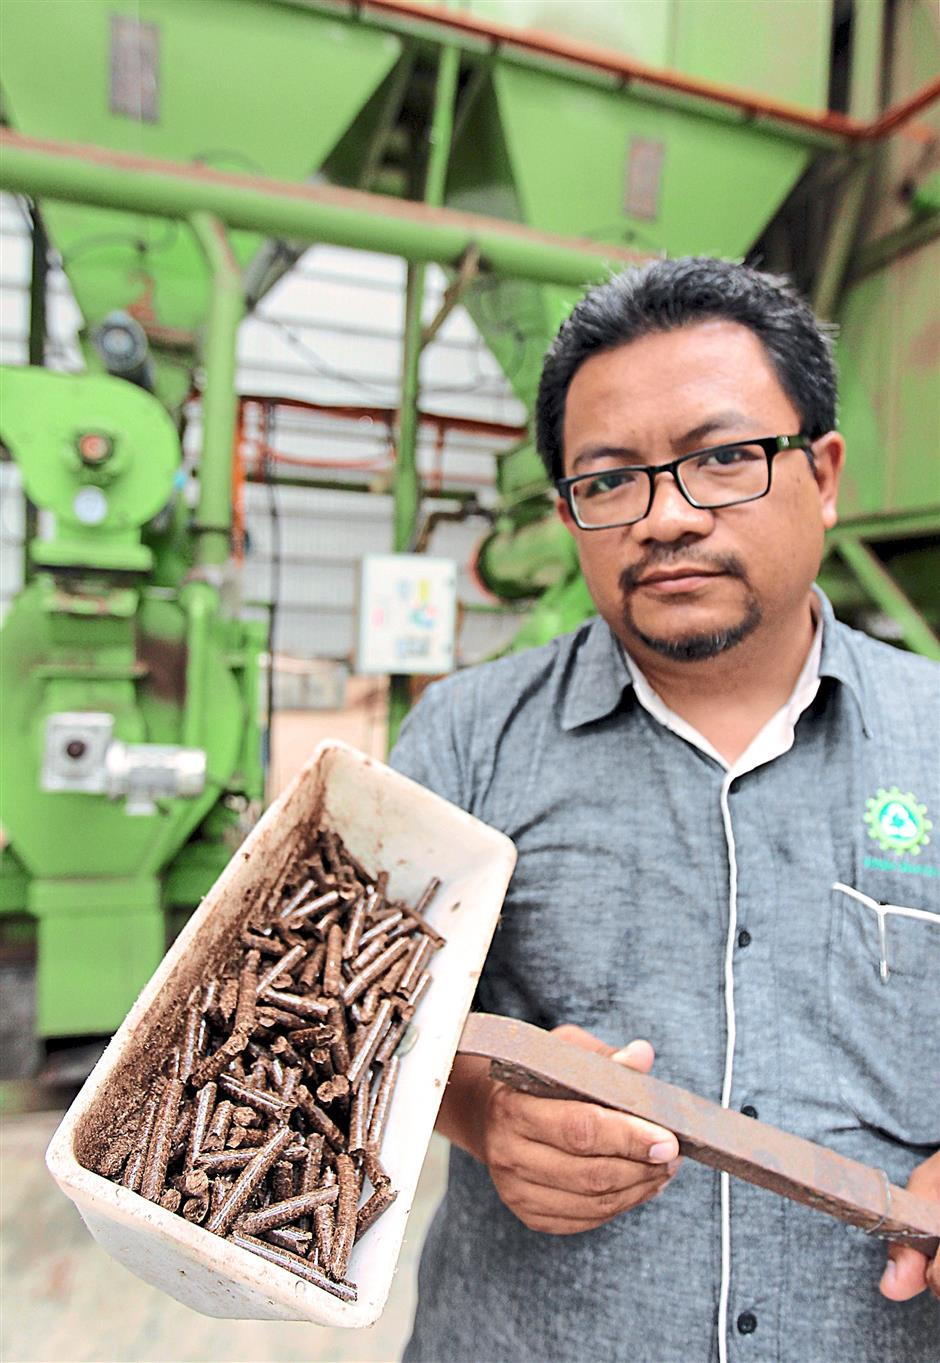 Md Arfizal said countries such as South Korea see biomass pellets as a substitute for wood pellets because of the latter's rising price.